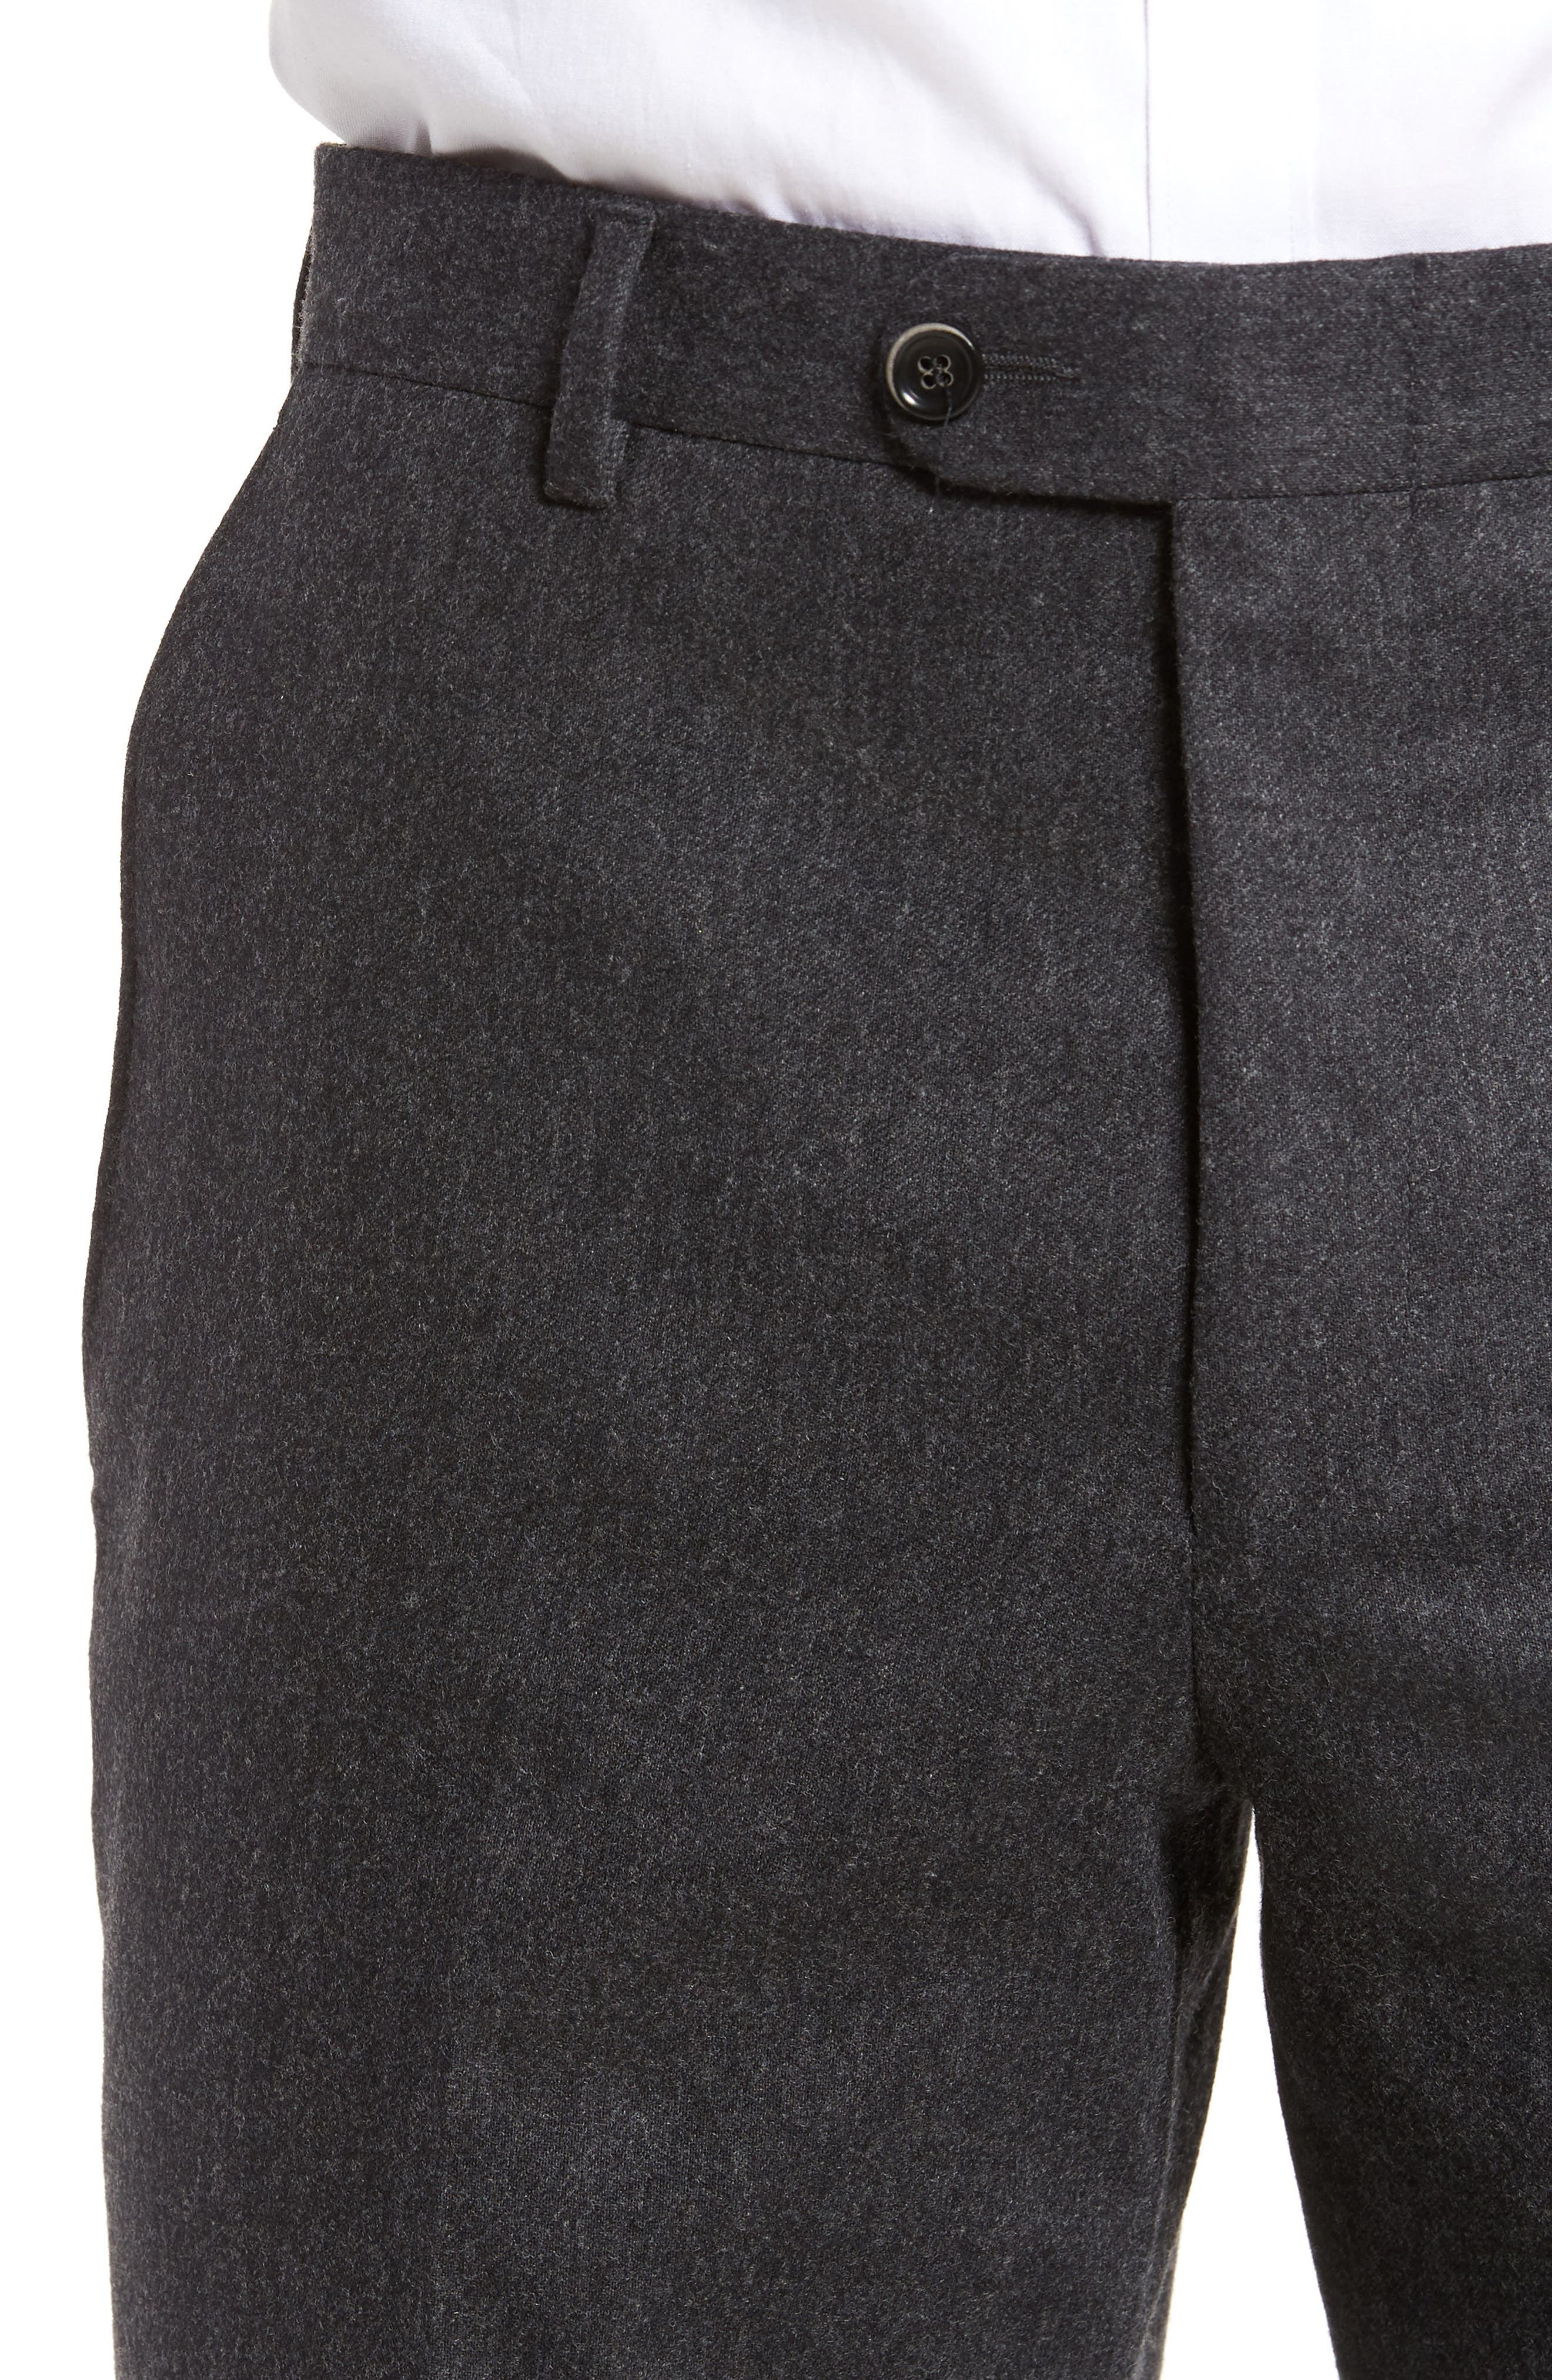 Classic B Fit Flat Front Solid Wool Blend Trousers,                             Alternate thumbnail 5, color,